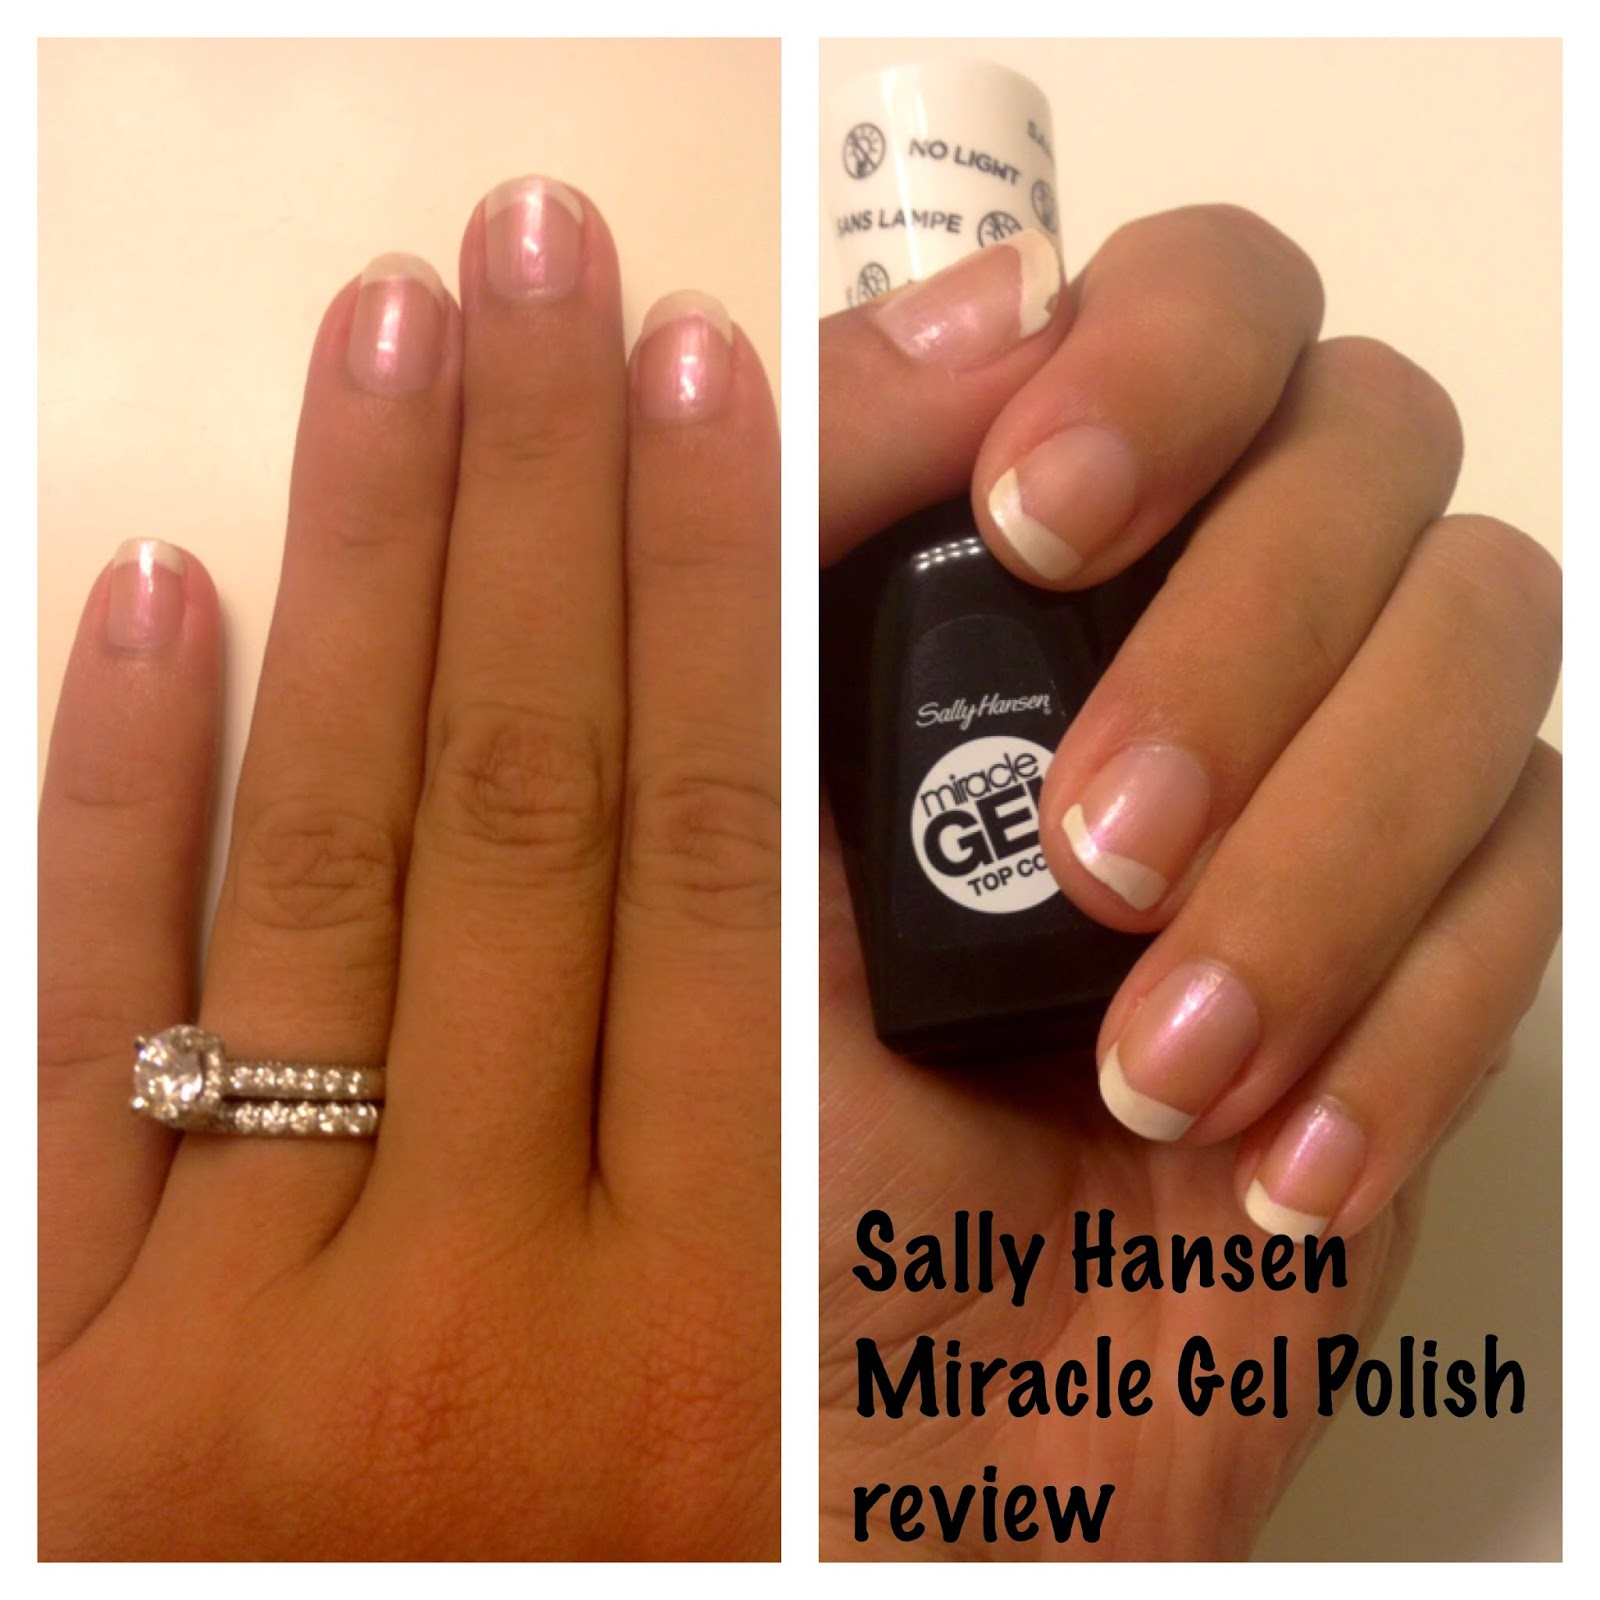 Samantha Angell: Travel & Lifestyle Blog: Review: Sally